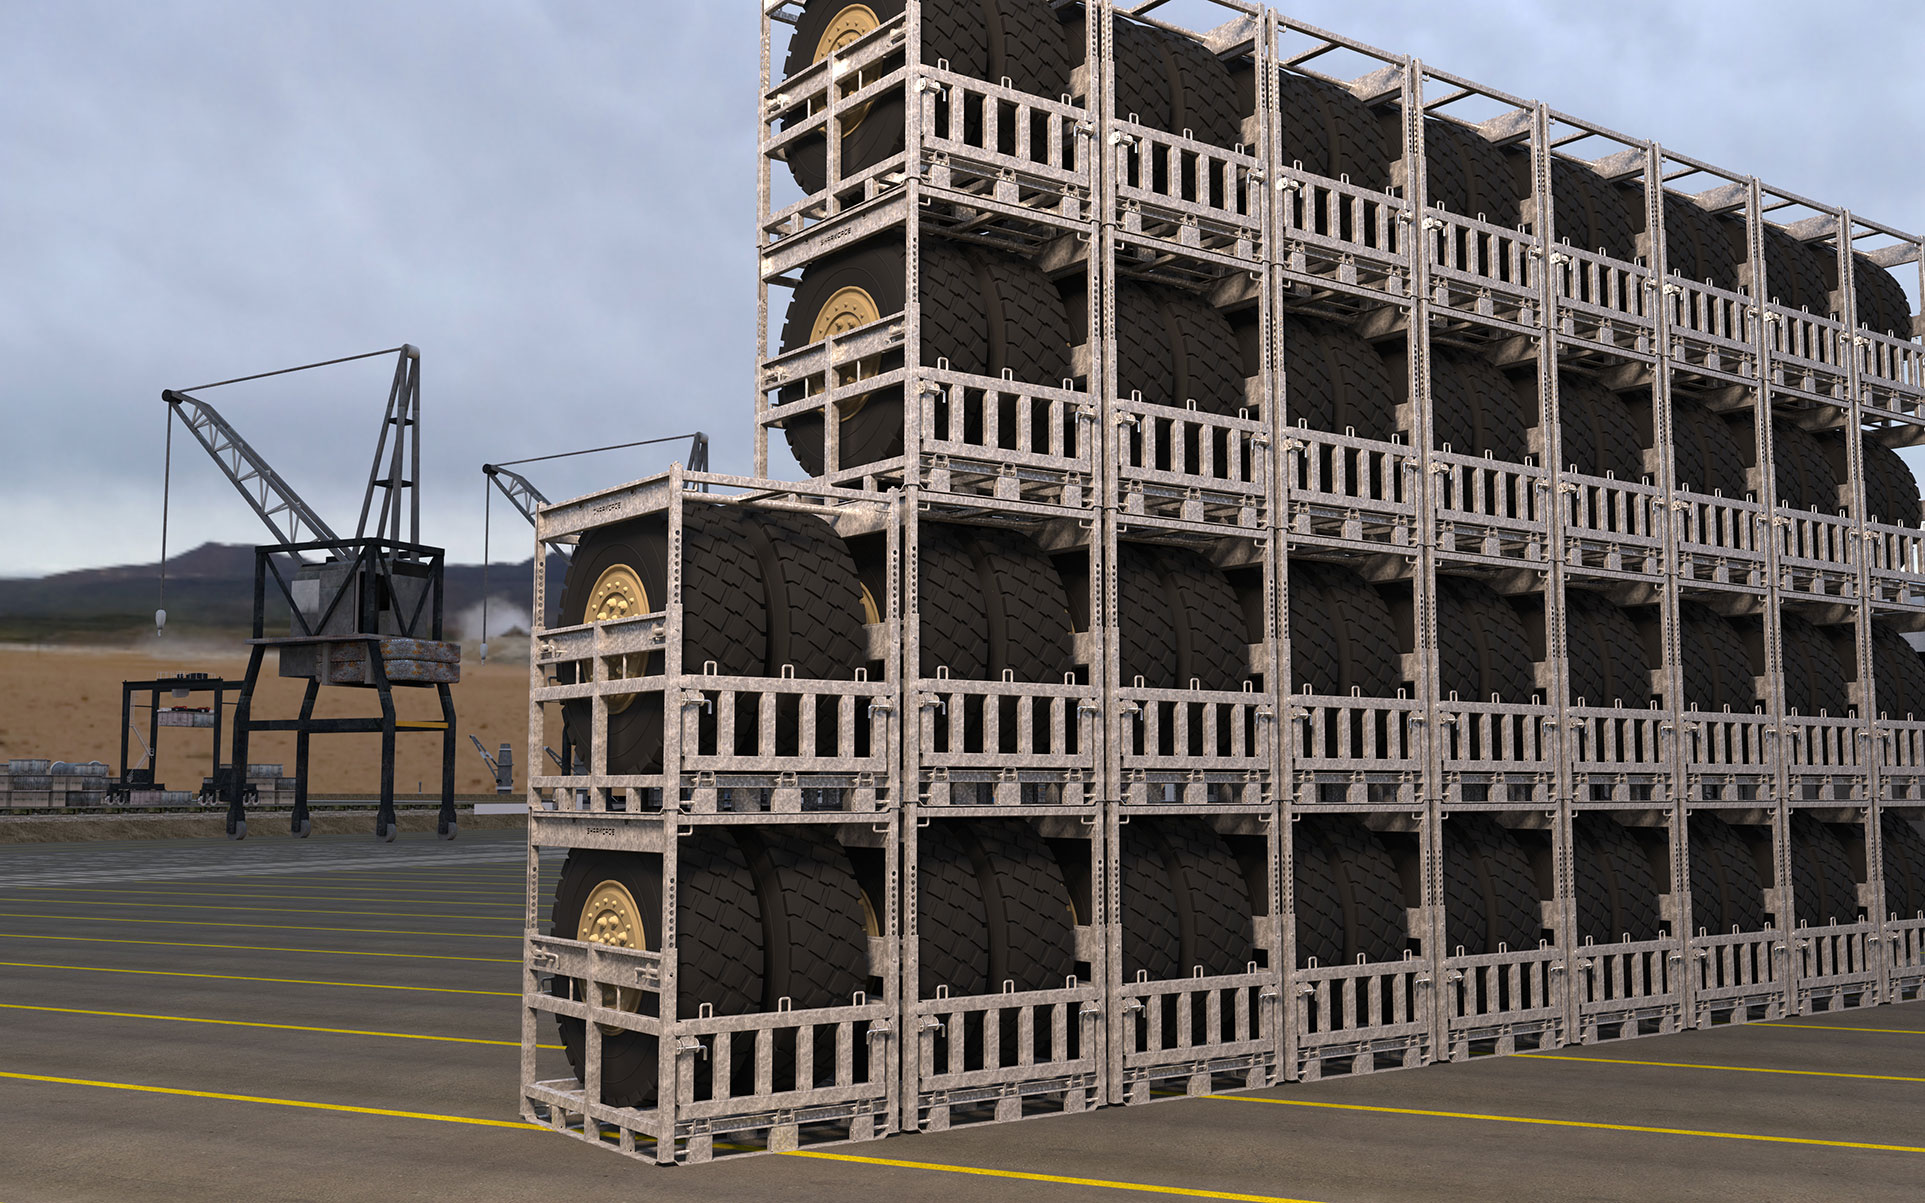 Heavy-Duty Wheel Racks Stacked for Compact Military Storage